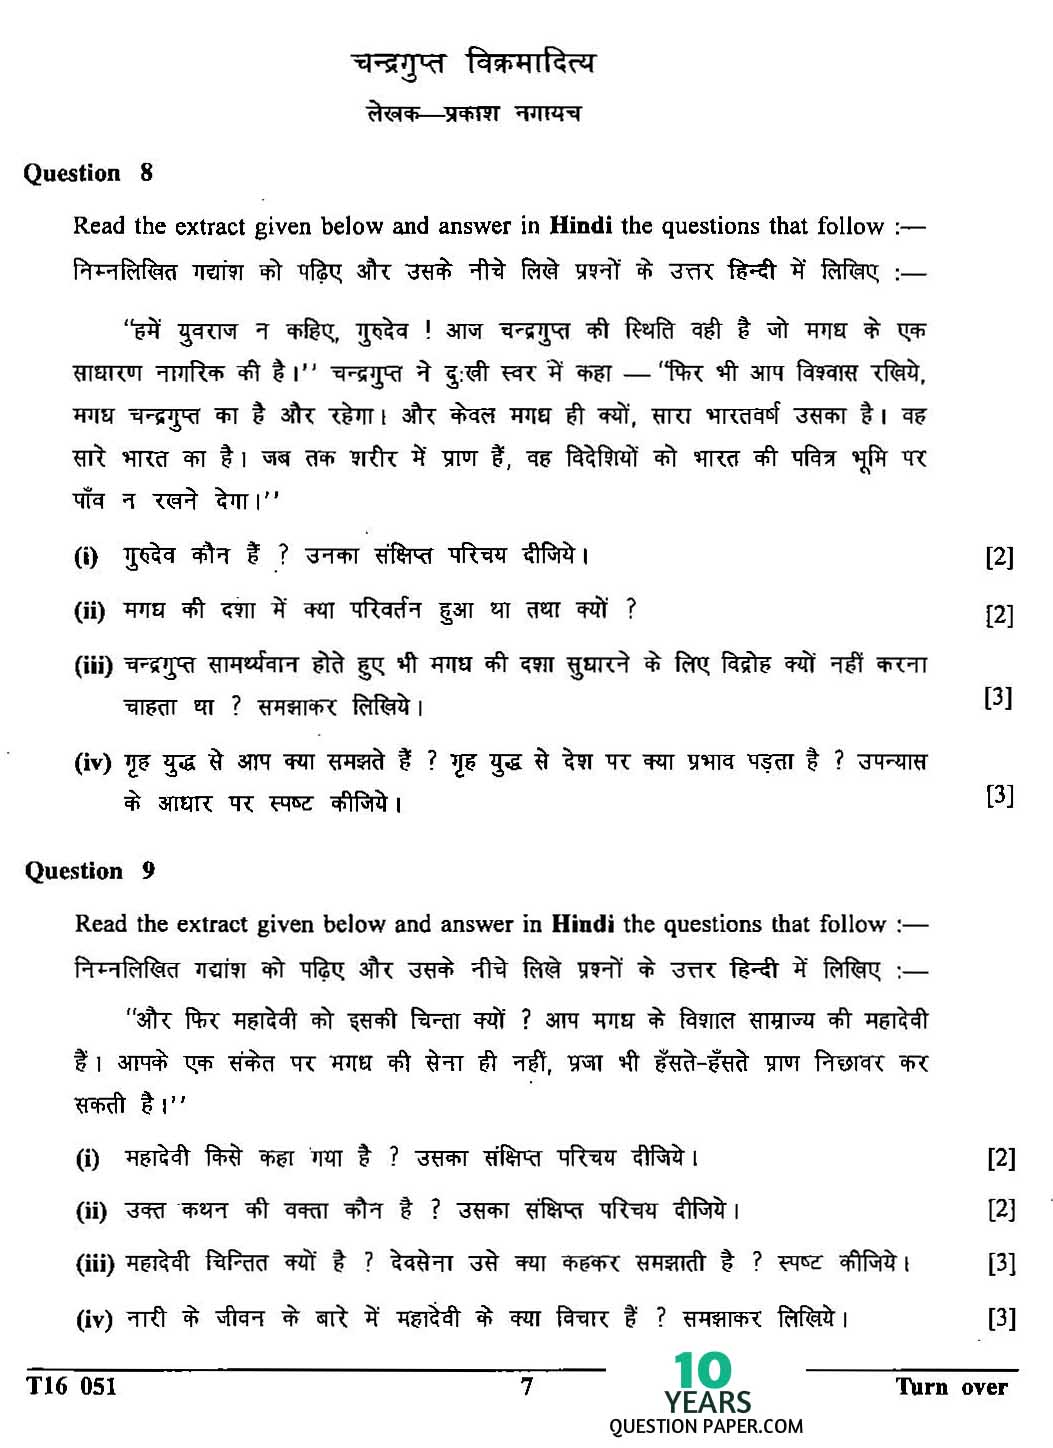 Icse 2016 hindi class x board question paper 10 years question paper icse 2016 class 10th hindi question paper malvernweather Image collections